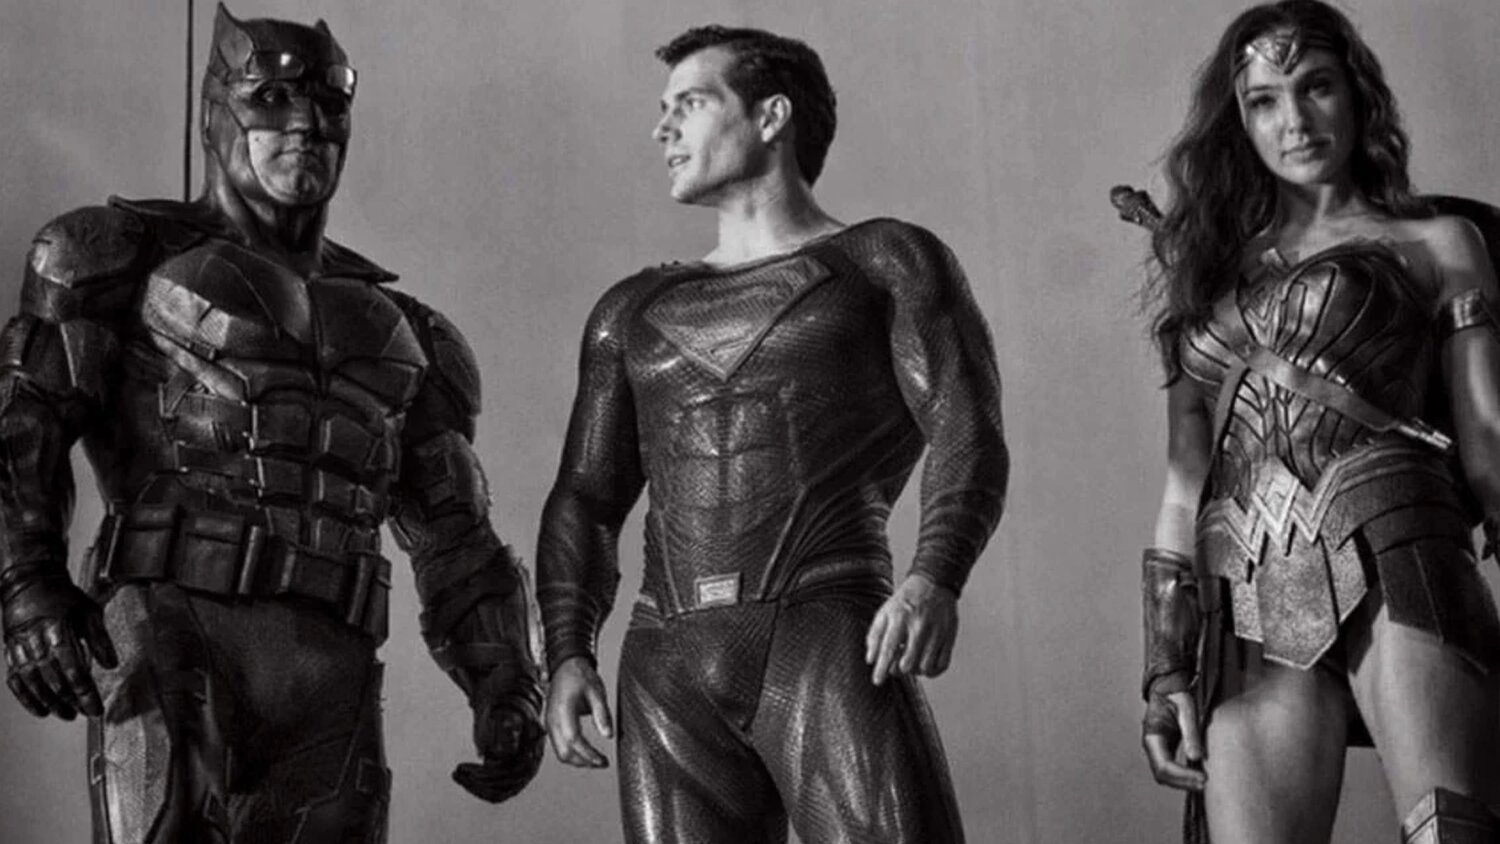 Zack Snyder Wanted To Shoot More Scenes For His JUSTICE LEAGUE Cut with the Cast But WB Said No — GeekTyrant